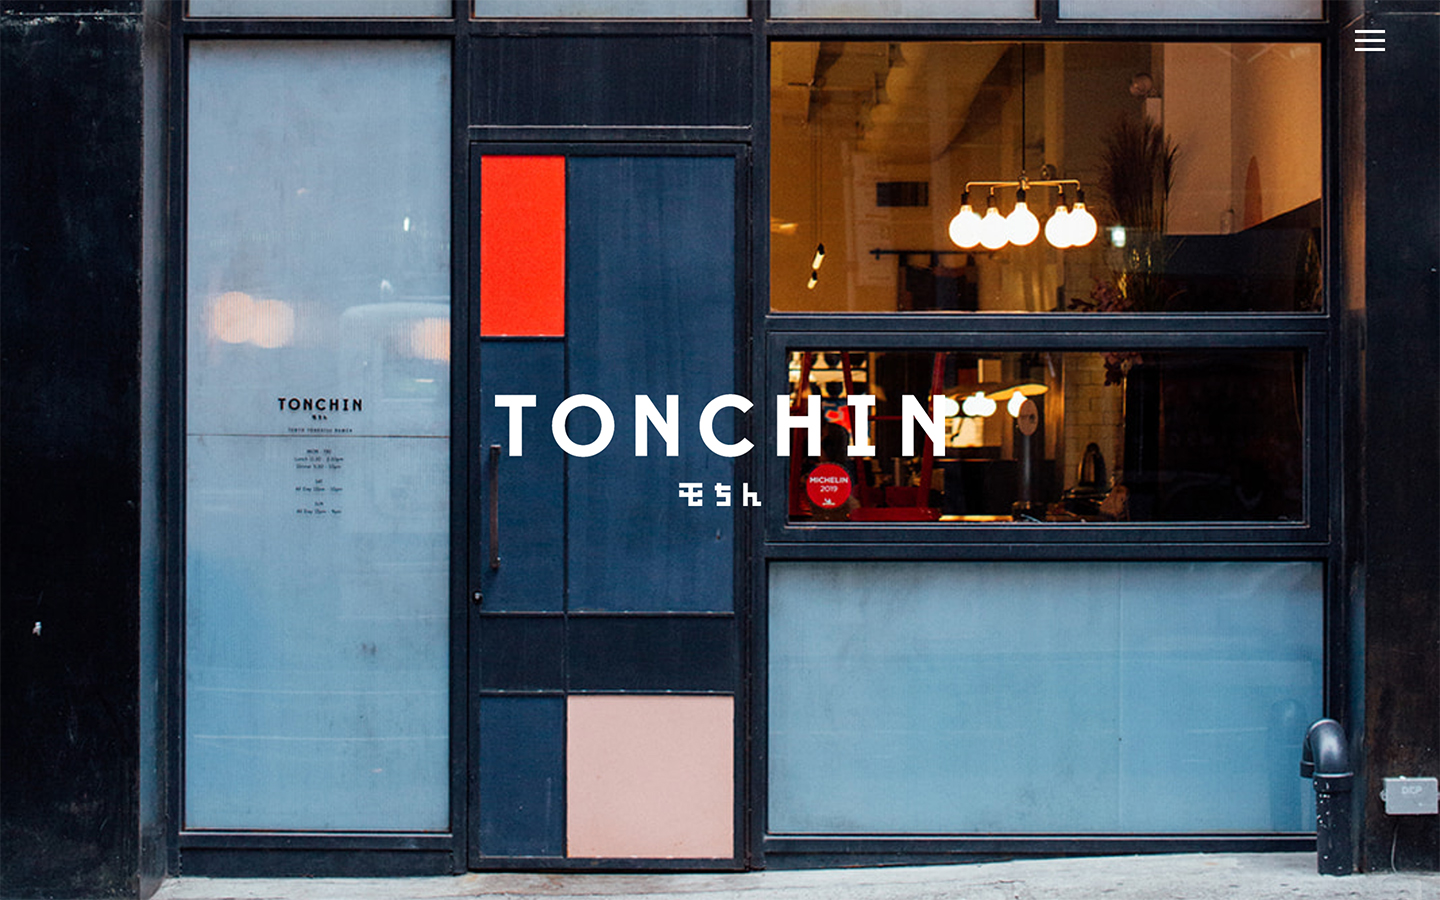 TONCHIN NYC